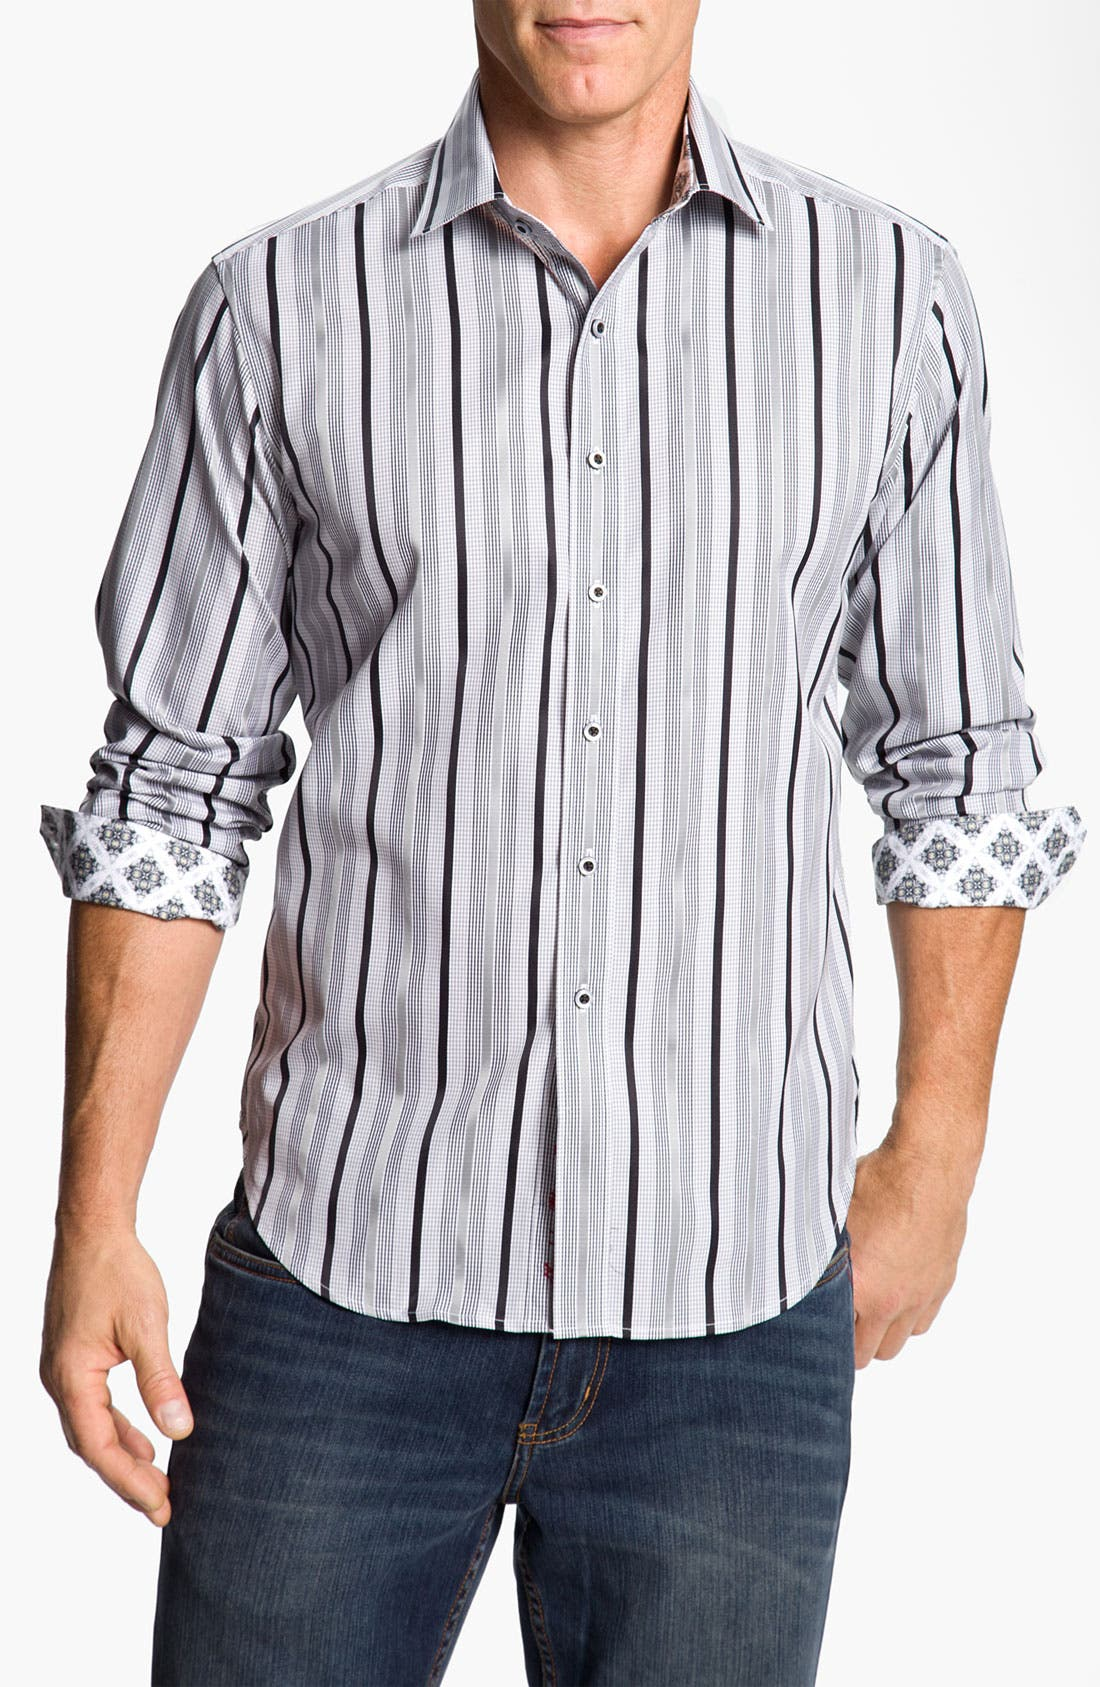 Main Image - Robert Graham 'Buckingham' Sport Shirt